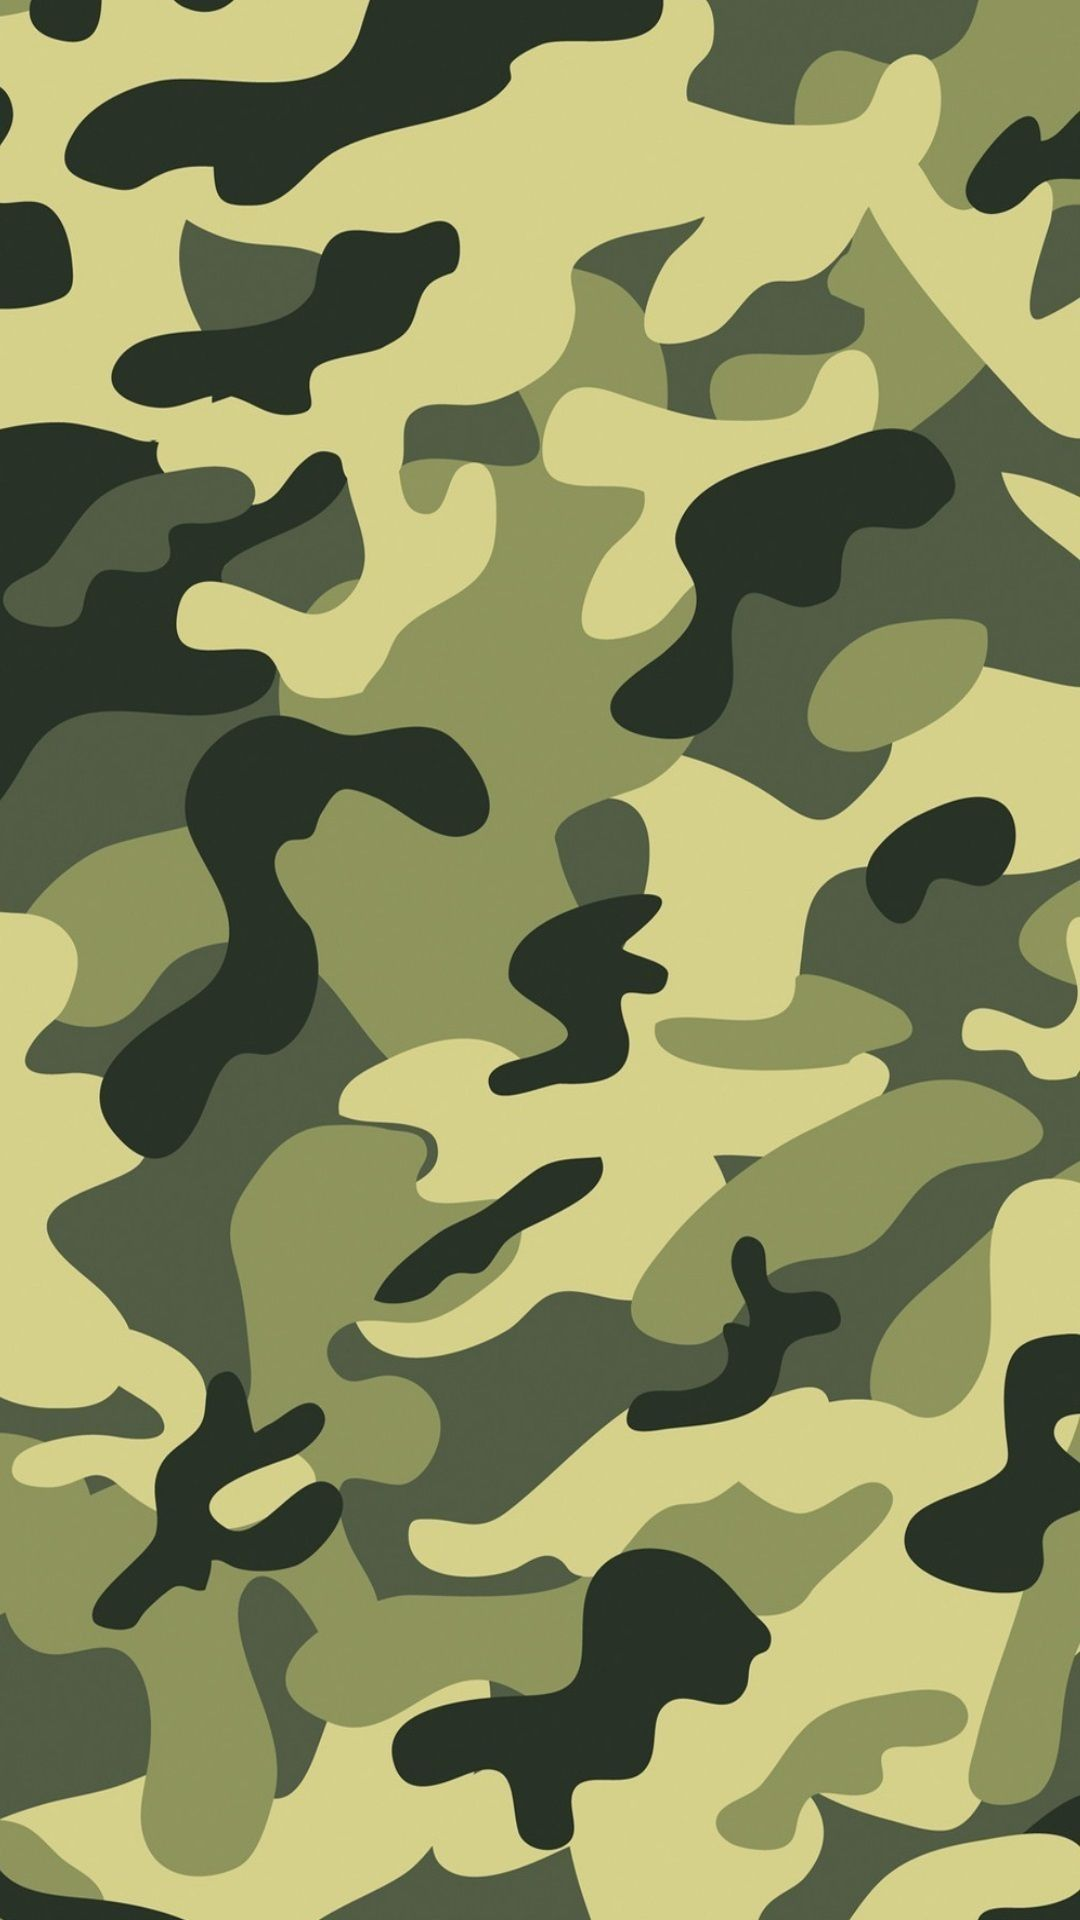 Awesome Camouflage Desktop Wallpaper Army Wallpaper Camo Wallpaper Camouflage Wallpaper